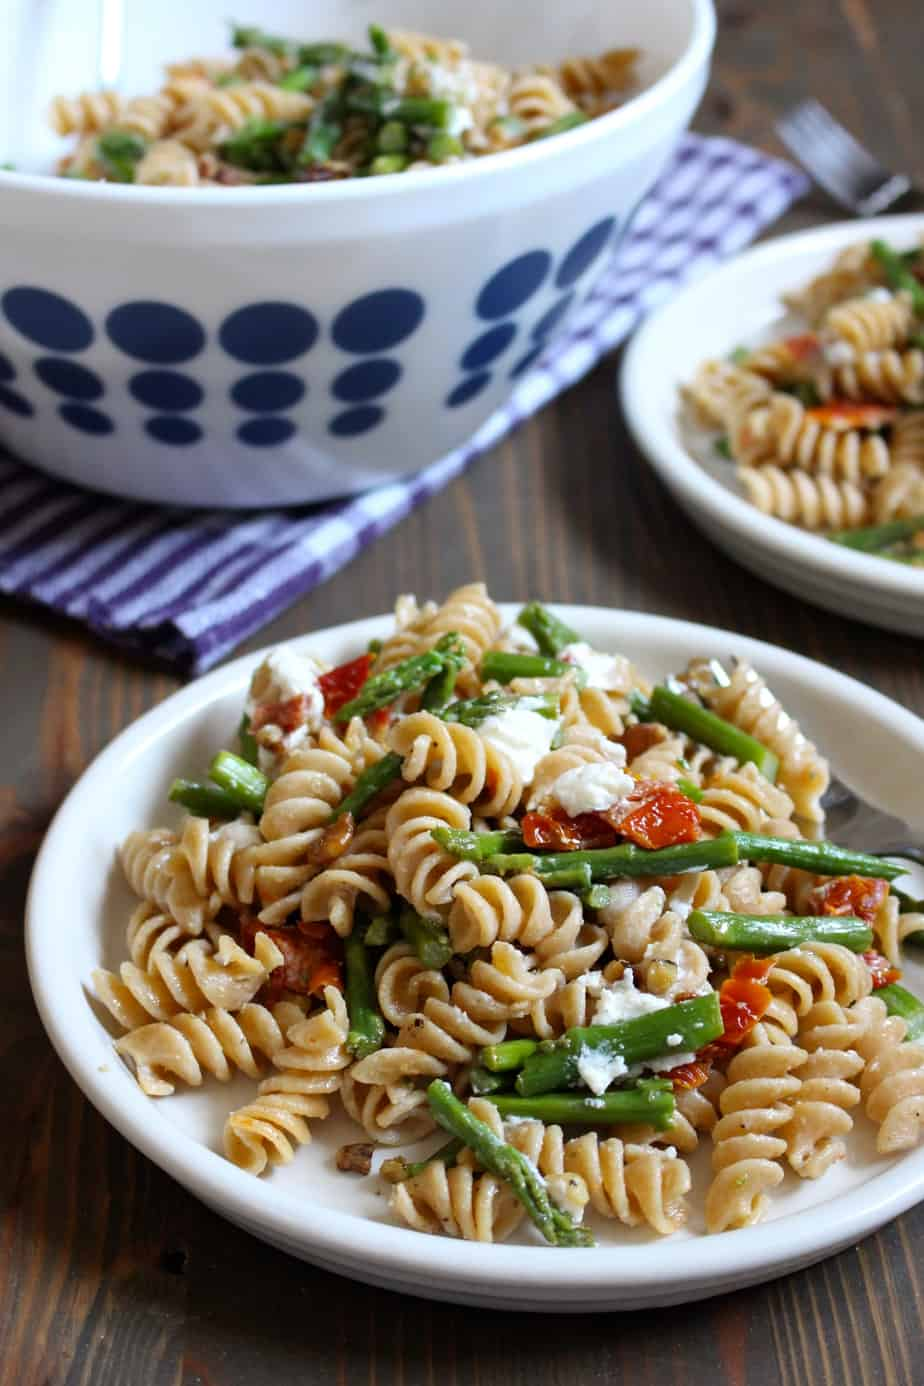 Easy Pasta Salad with Asparagus, Goat Cheese, and Sun Dried Tomatoes | Frugal Nutrition